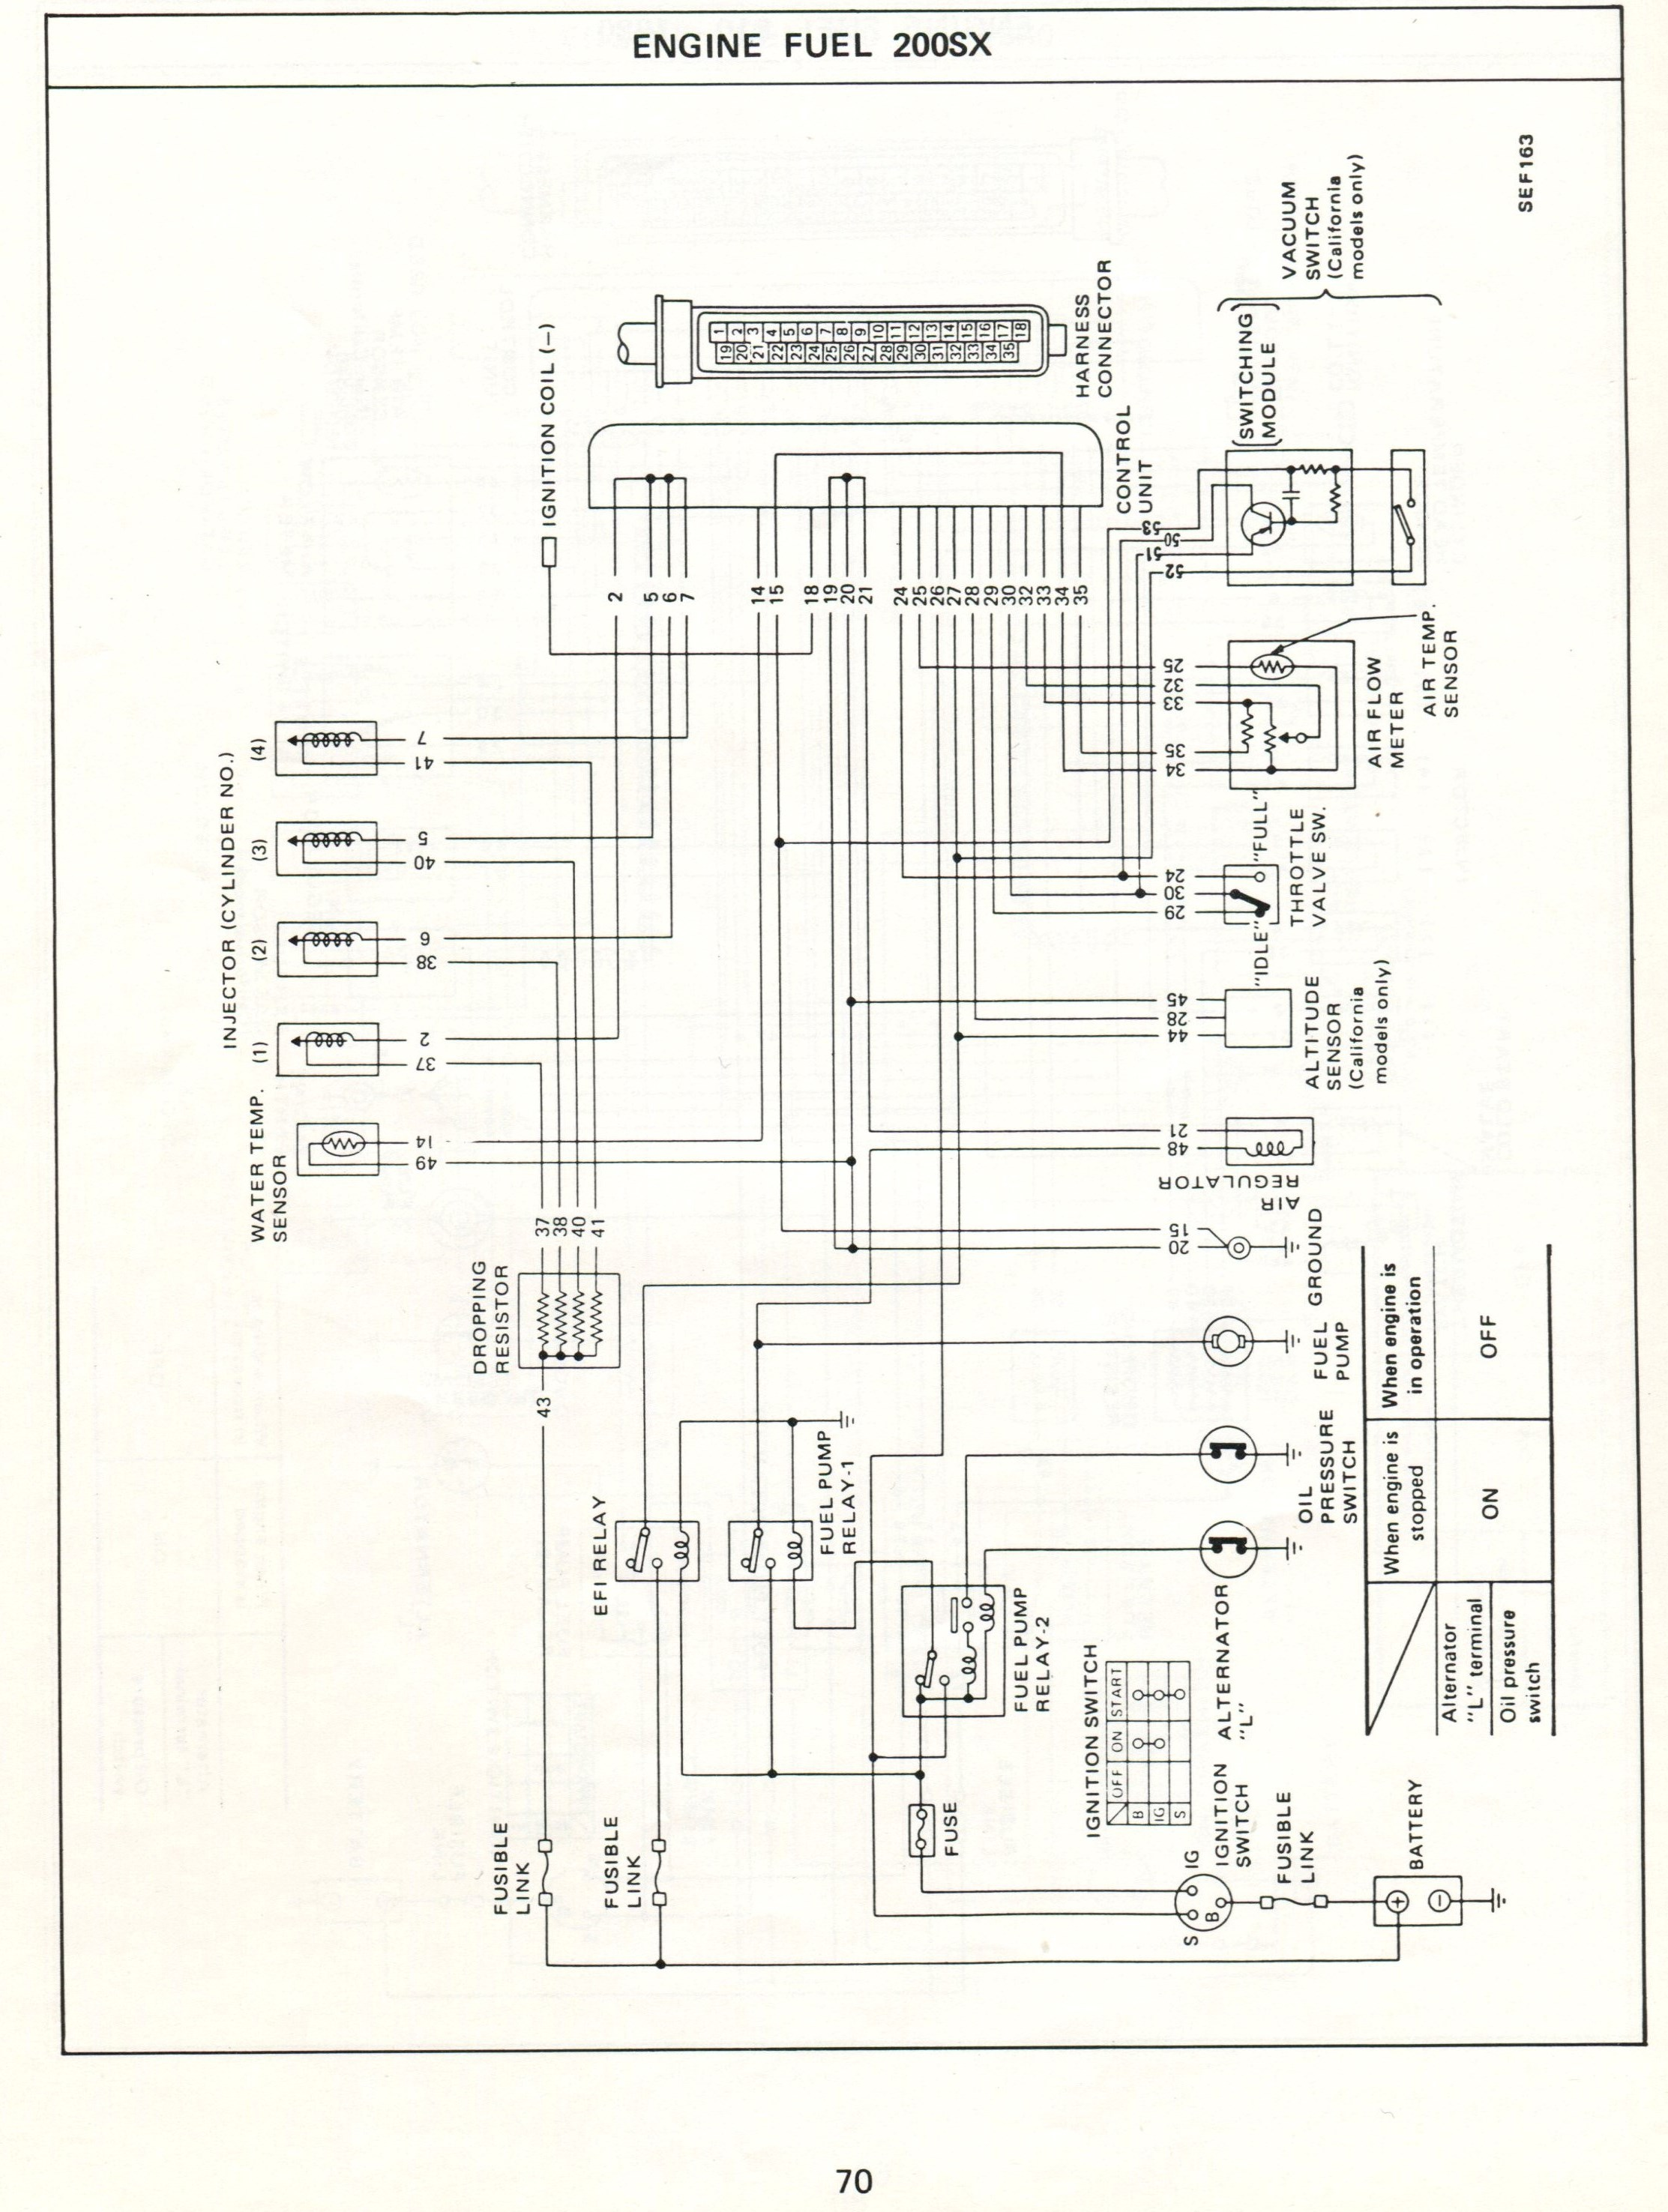 Wiring Diagram For 1976 Datsun 280z. 1976 Datsun 280z